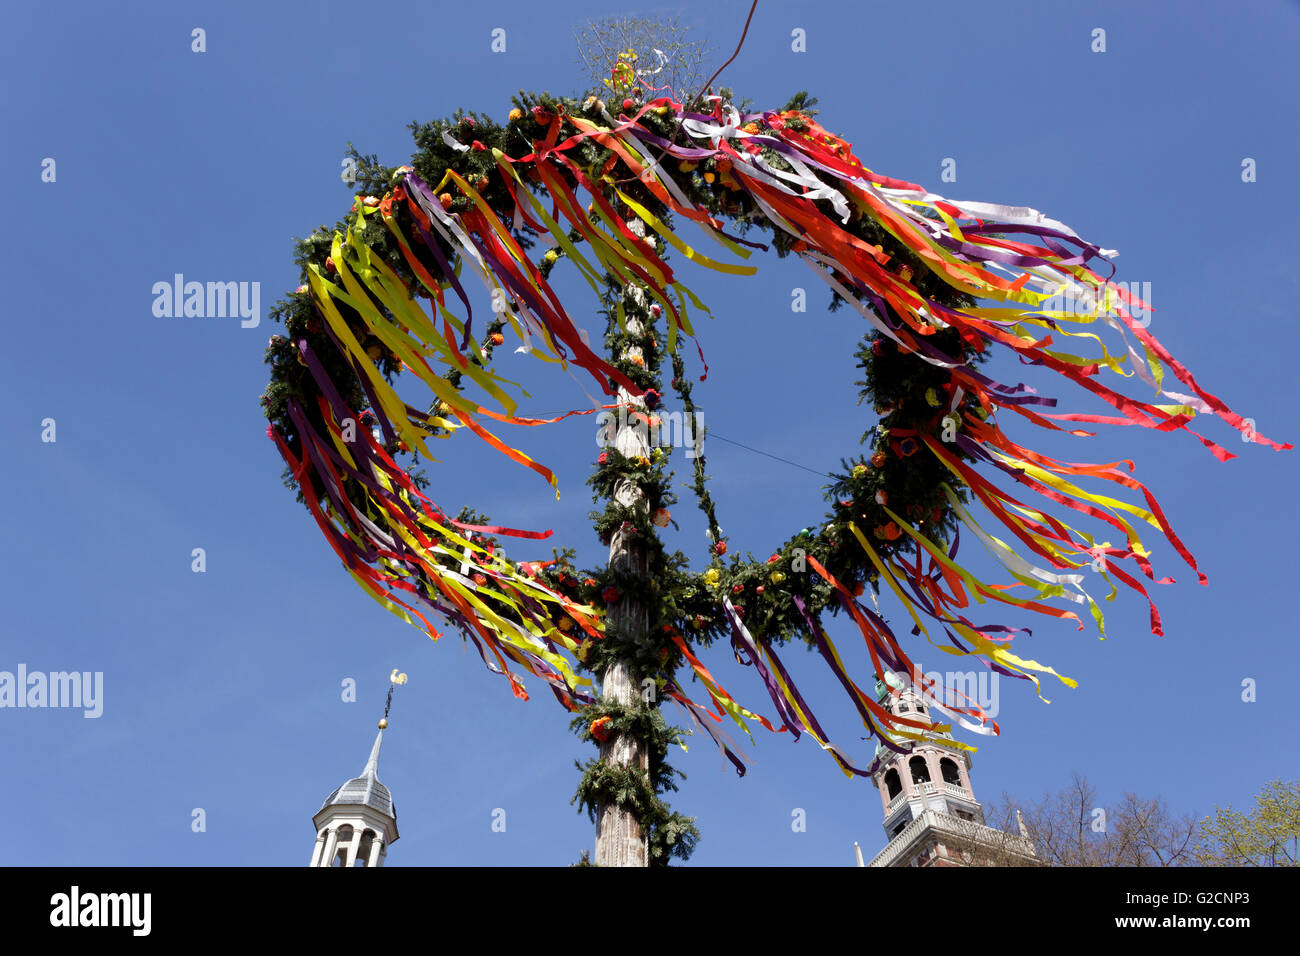 maypole, Leer, East Friesland, Lower Saxony, Germany - Stock Image